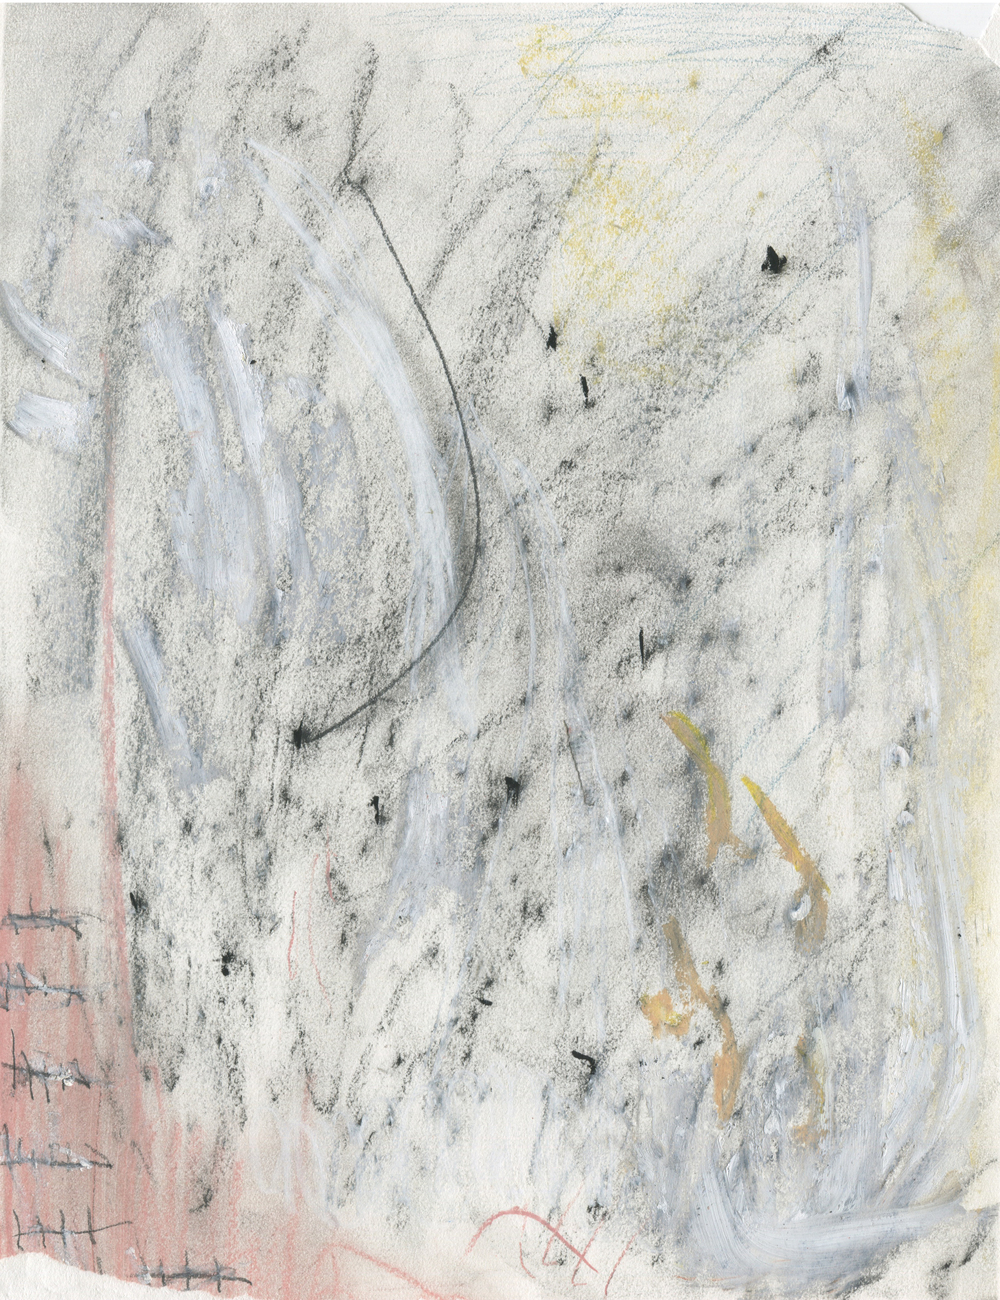 Oblivion, but Probably Not , 2016  14 x 11 inches  Charcoal, Acrylic, Chalk Pastel, Graphite, and Oil Pastel on Paper